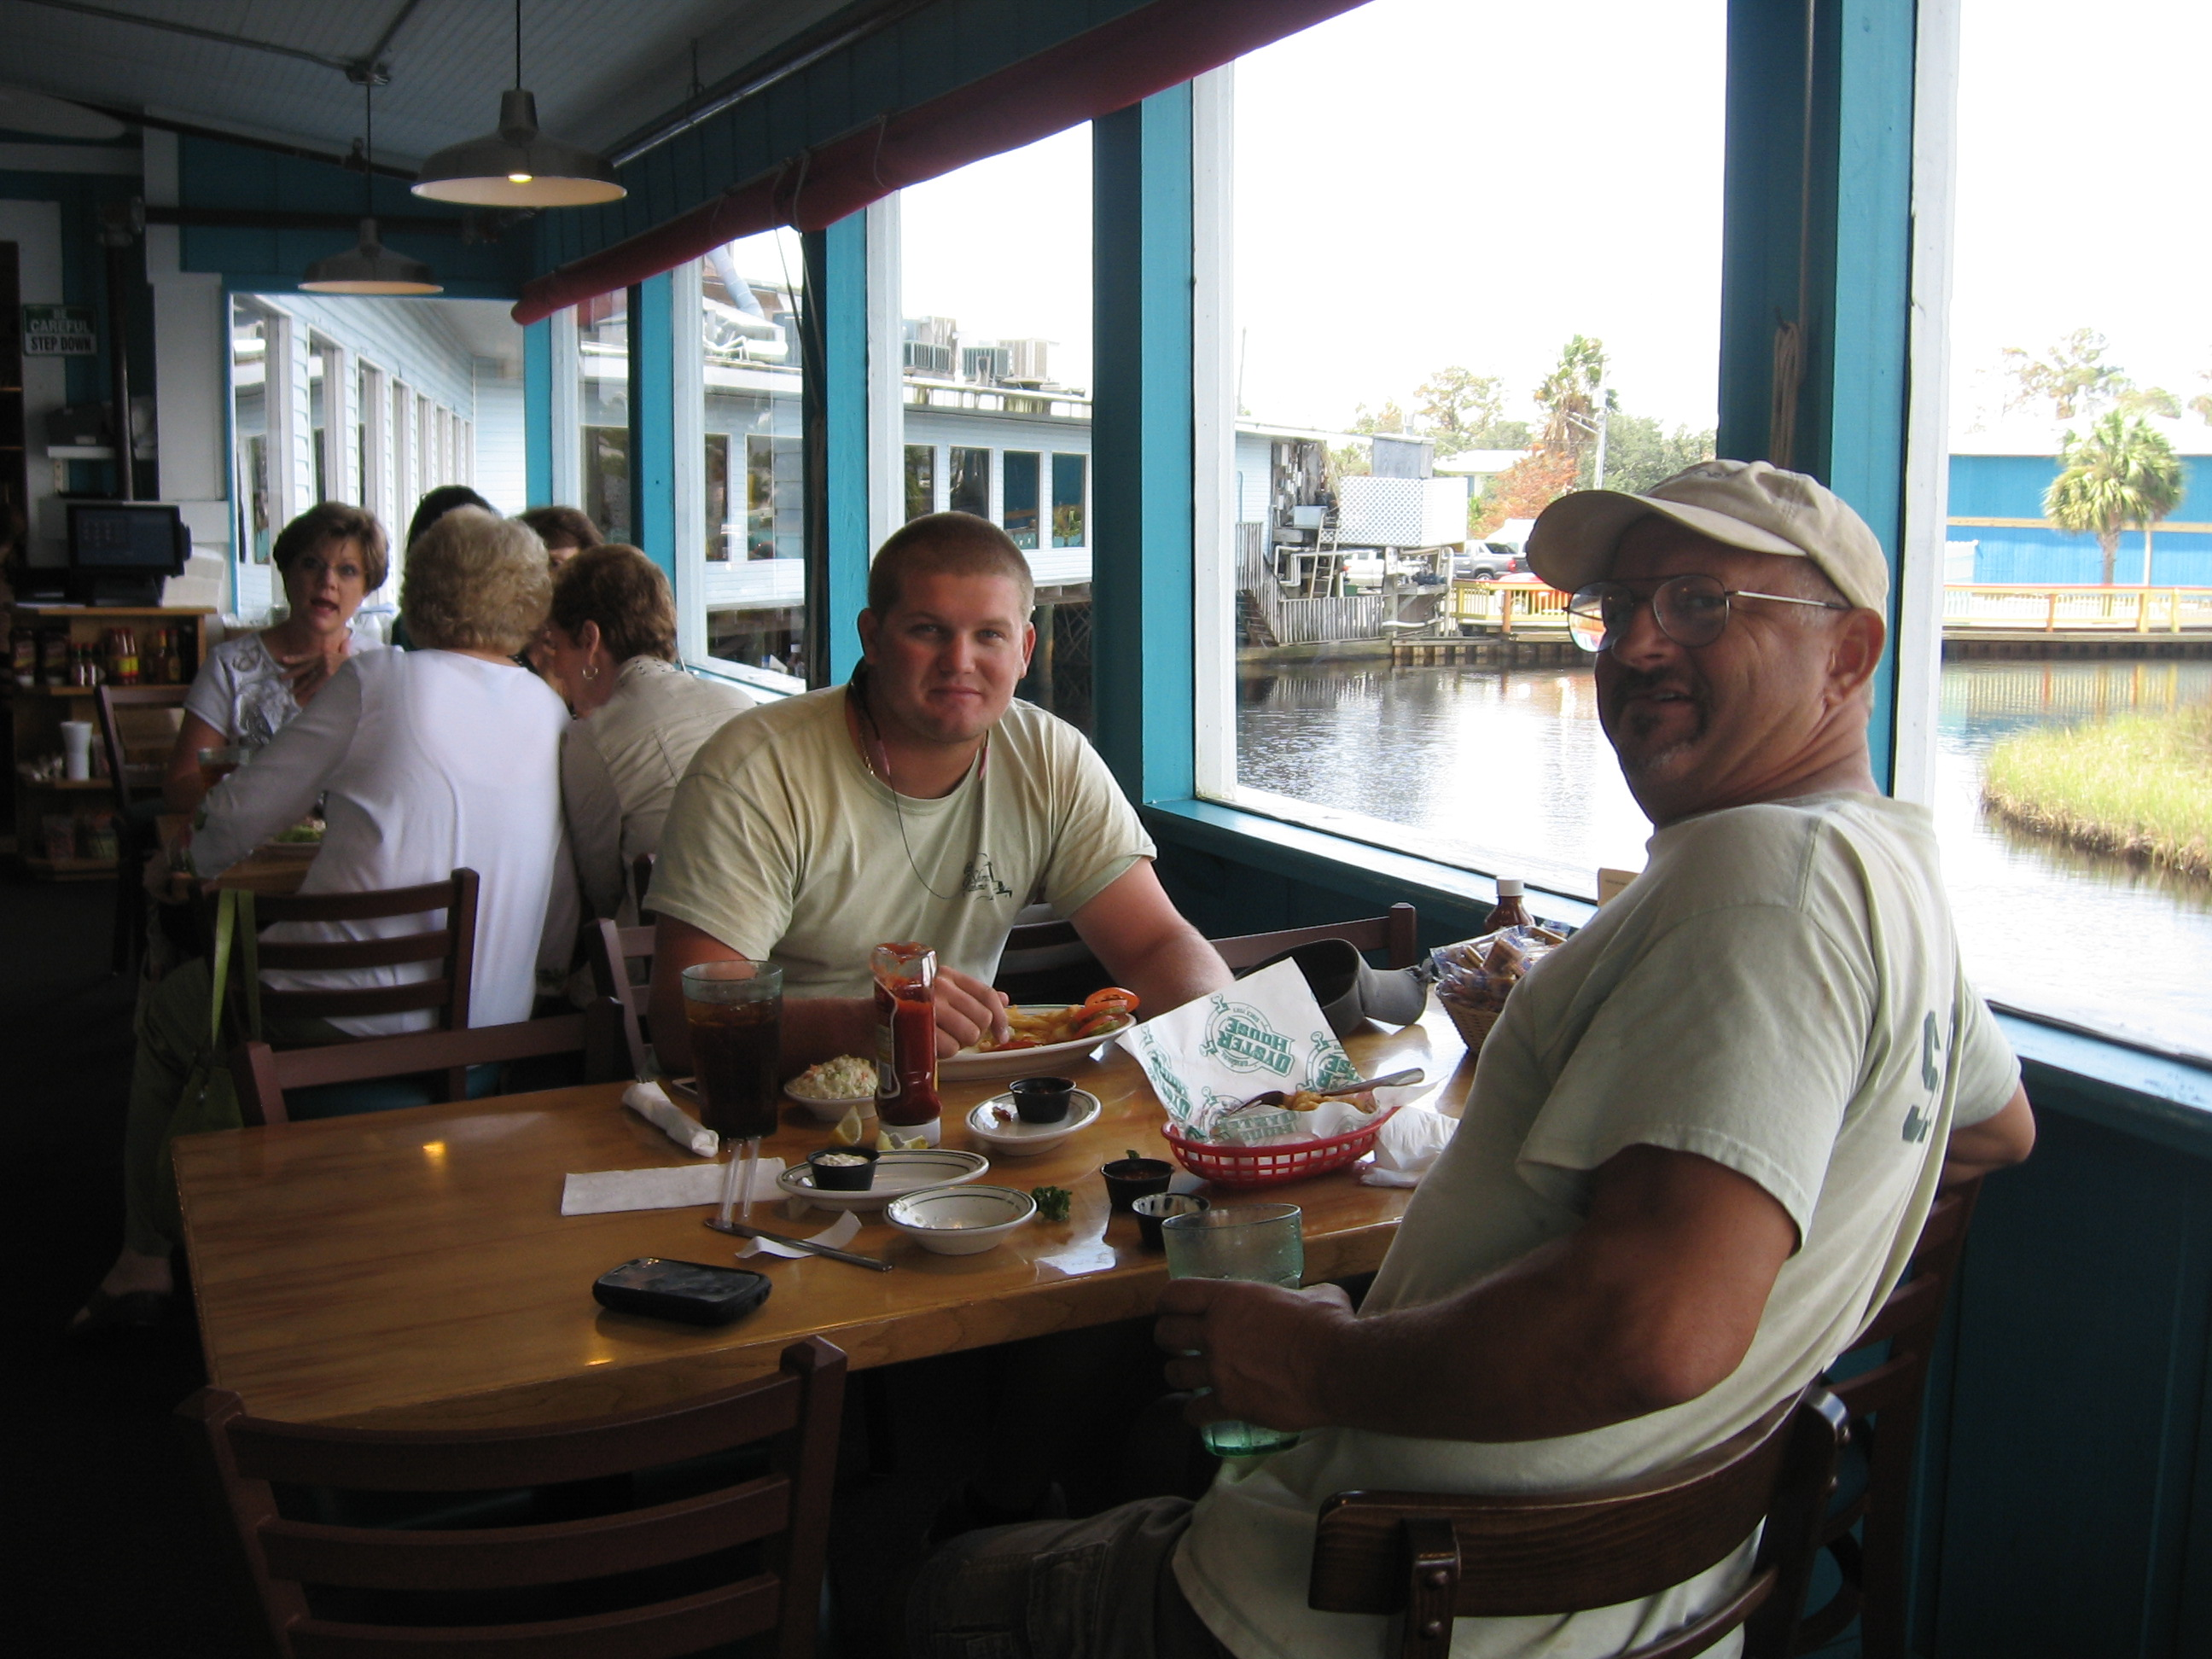 Two firefighters sitting at a table enjoying Original Oyster House lunch